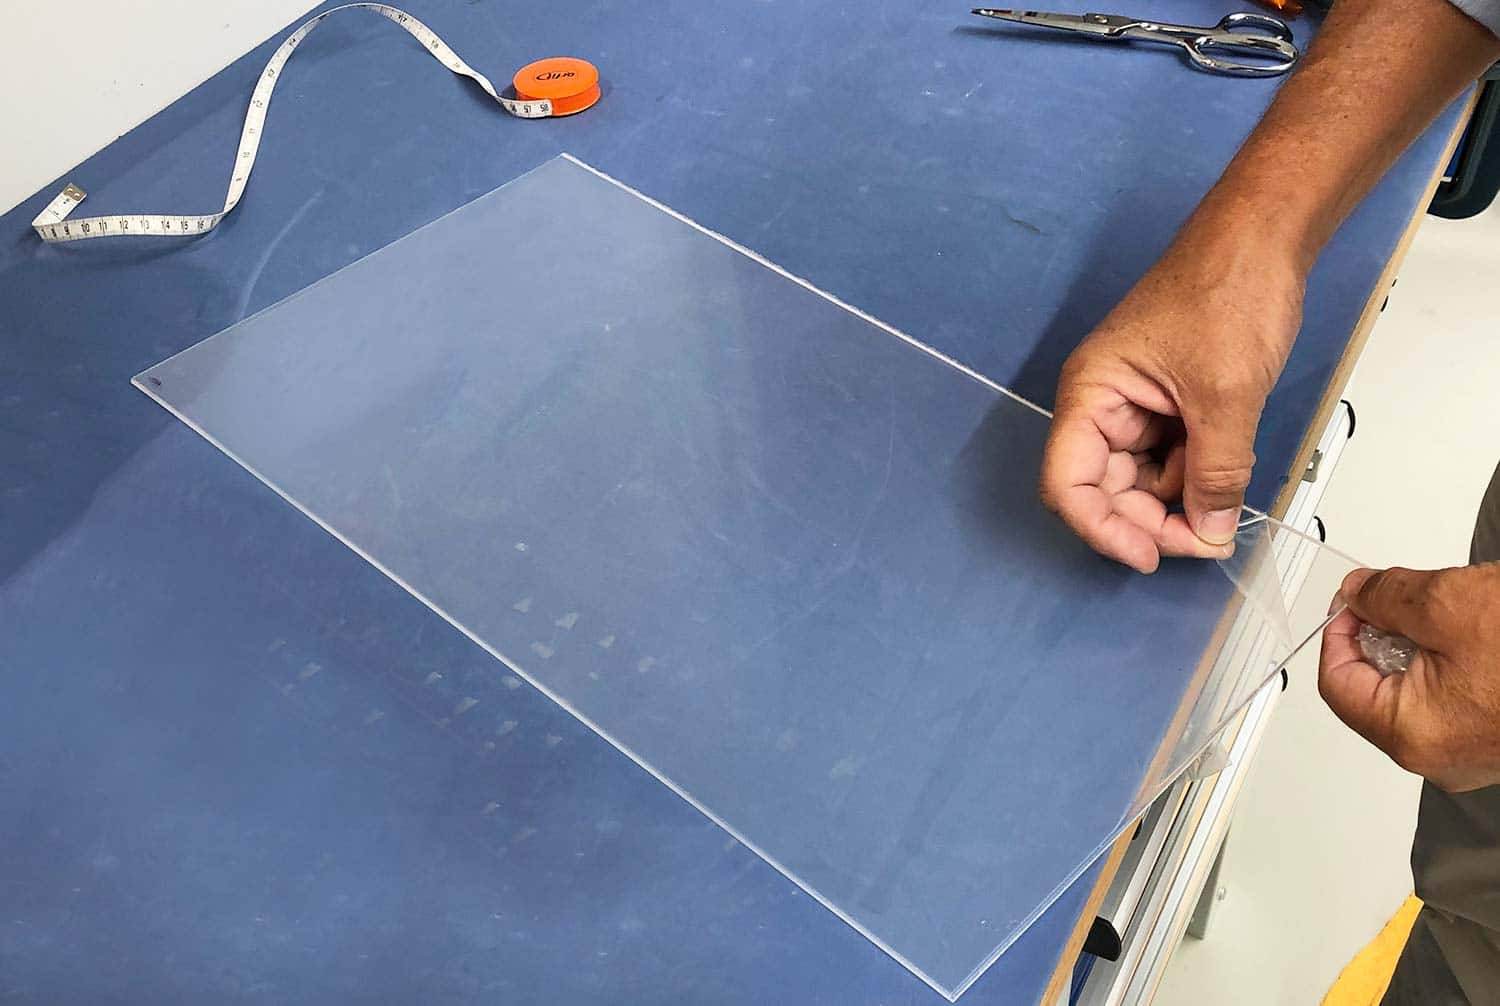 High-temperature thermoplastic sheet